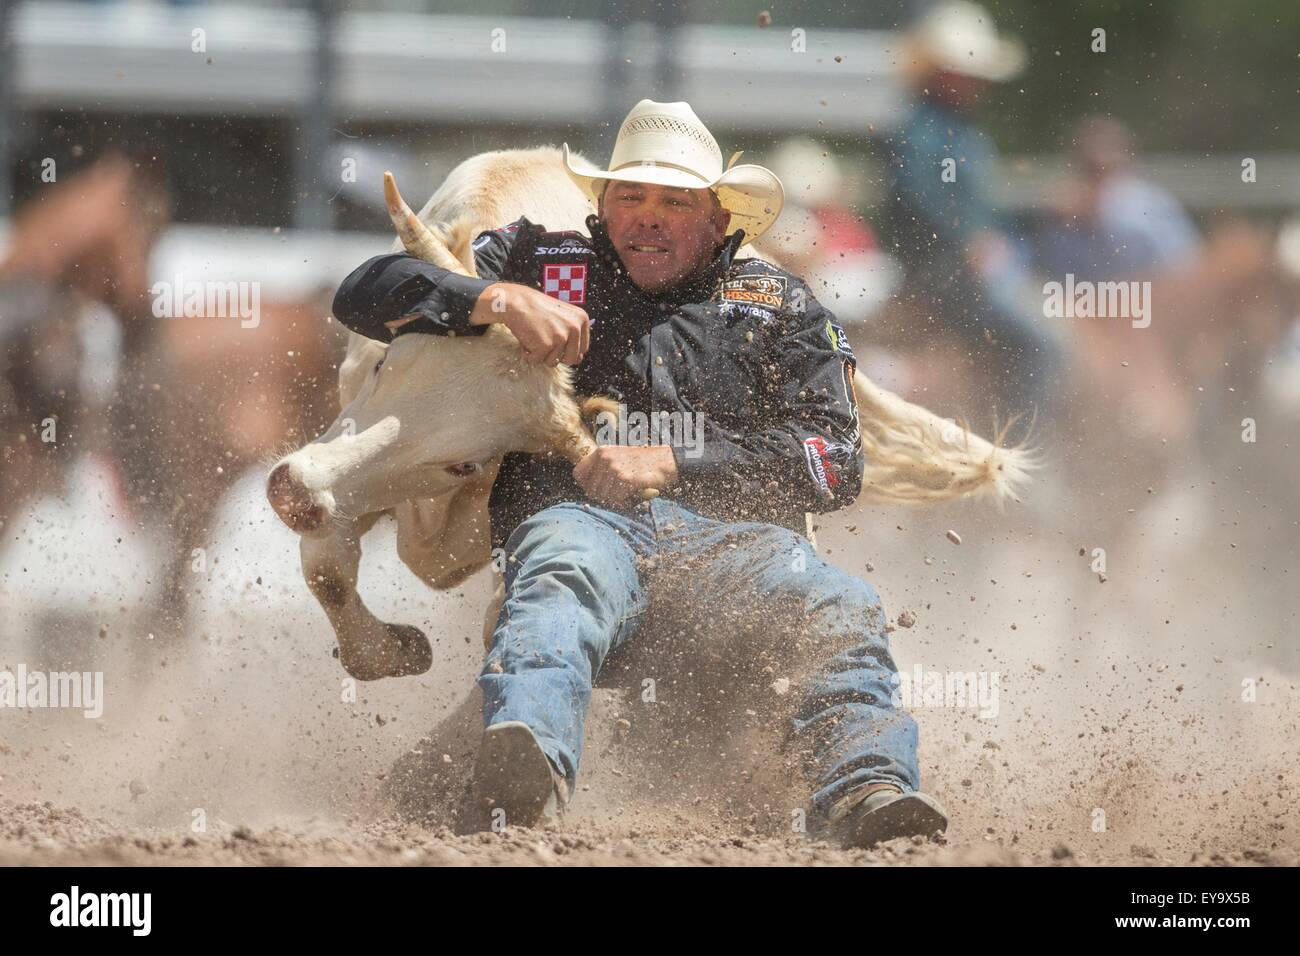 Cheyenne, Wyoming, USA. 24th July, 2015. Steer Wrestler K.C. Jones of Decatur, Texas grabs the horns of a steer - Stock Image